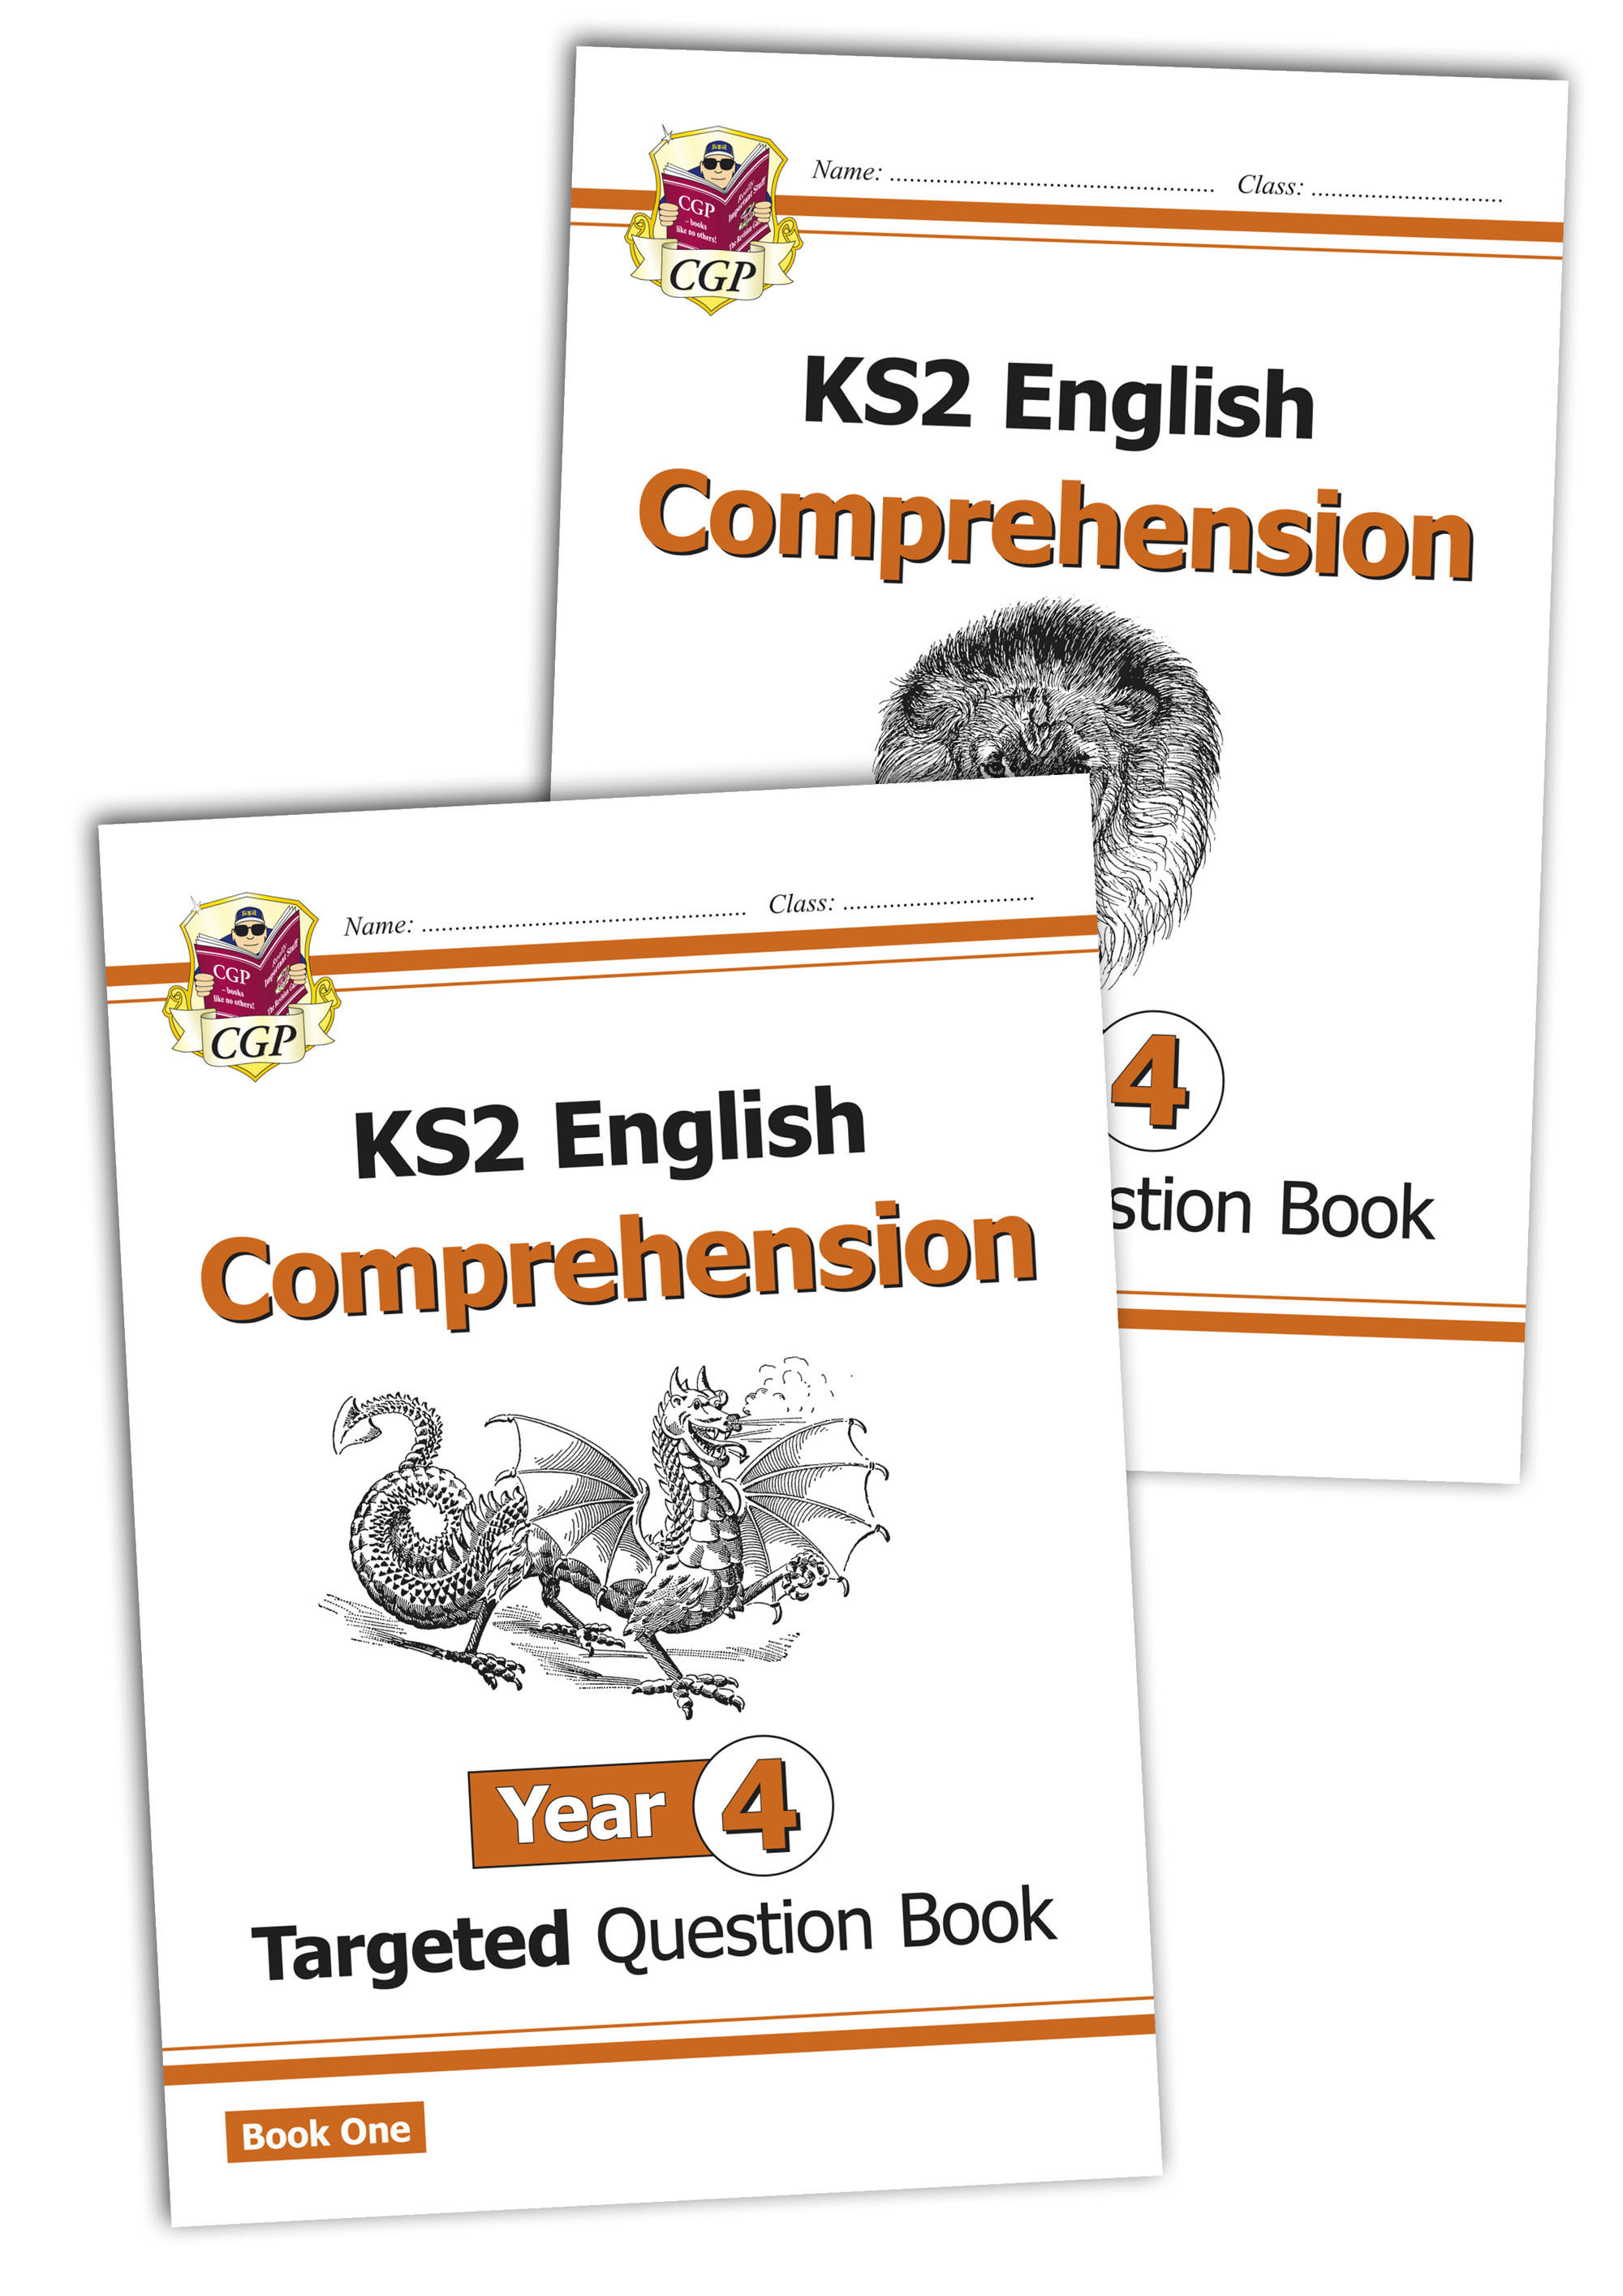 E4CWB21 - KS2 English Targeted Question Book: Year 4 Comprehension - Book 1 & 2 Bundle